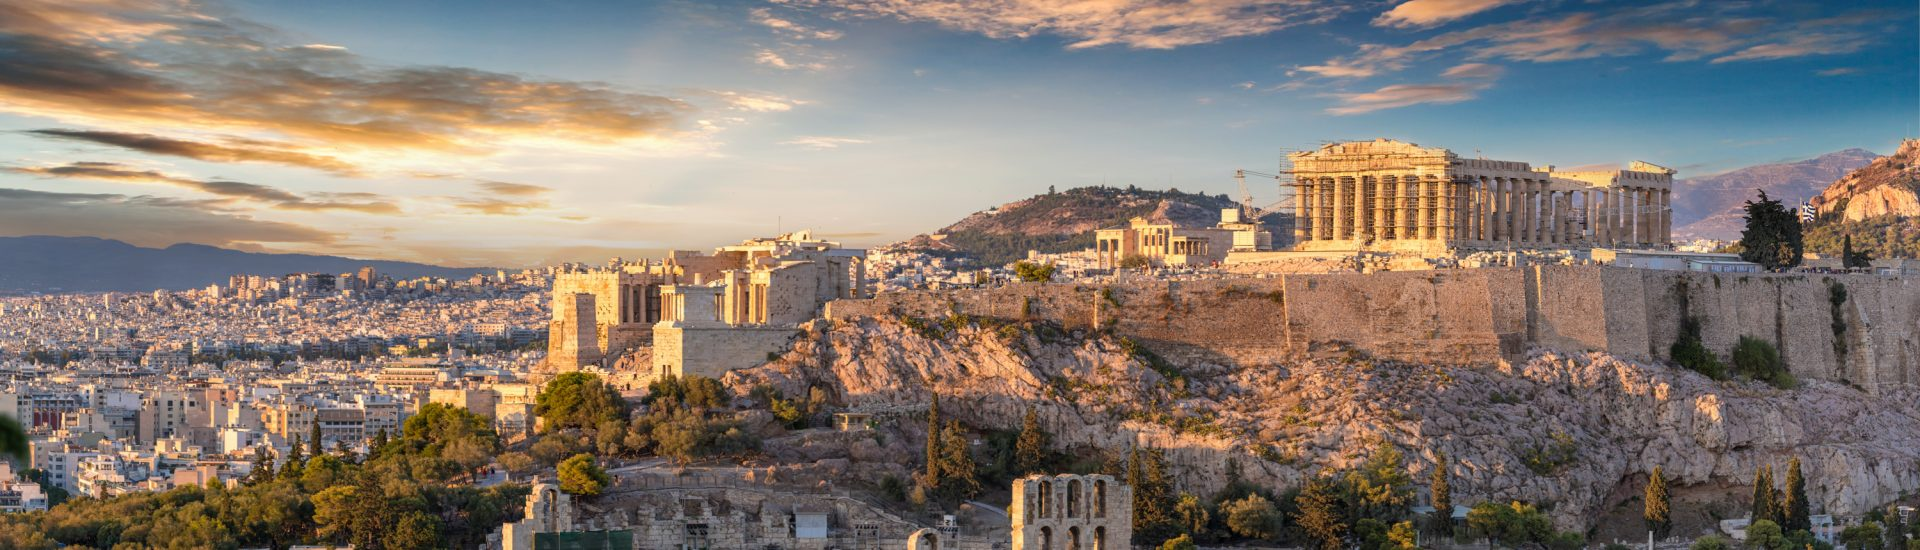 Things to do in Athens Greece: The Acropolis of Athens, Greece, with the Parthenon Temple during sunset. One of the top places to visit in Greece.